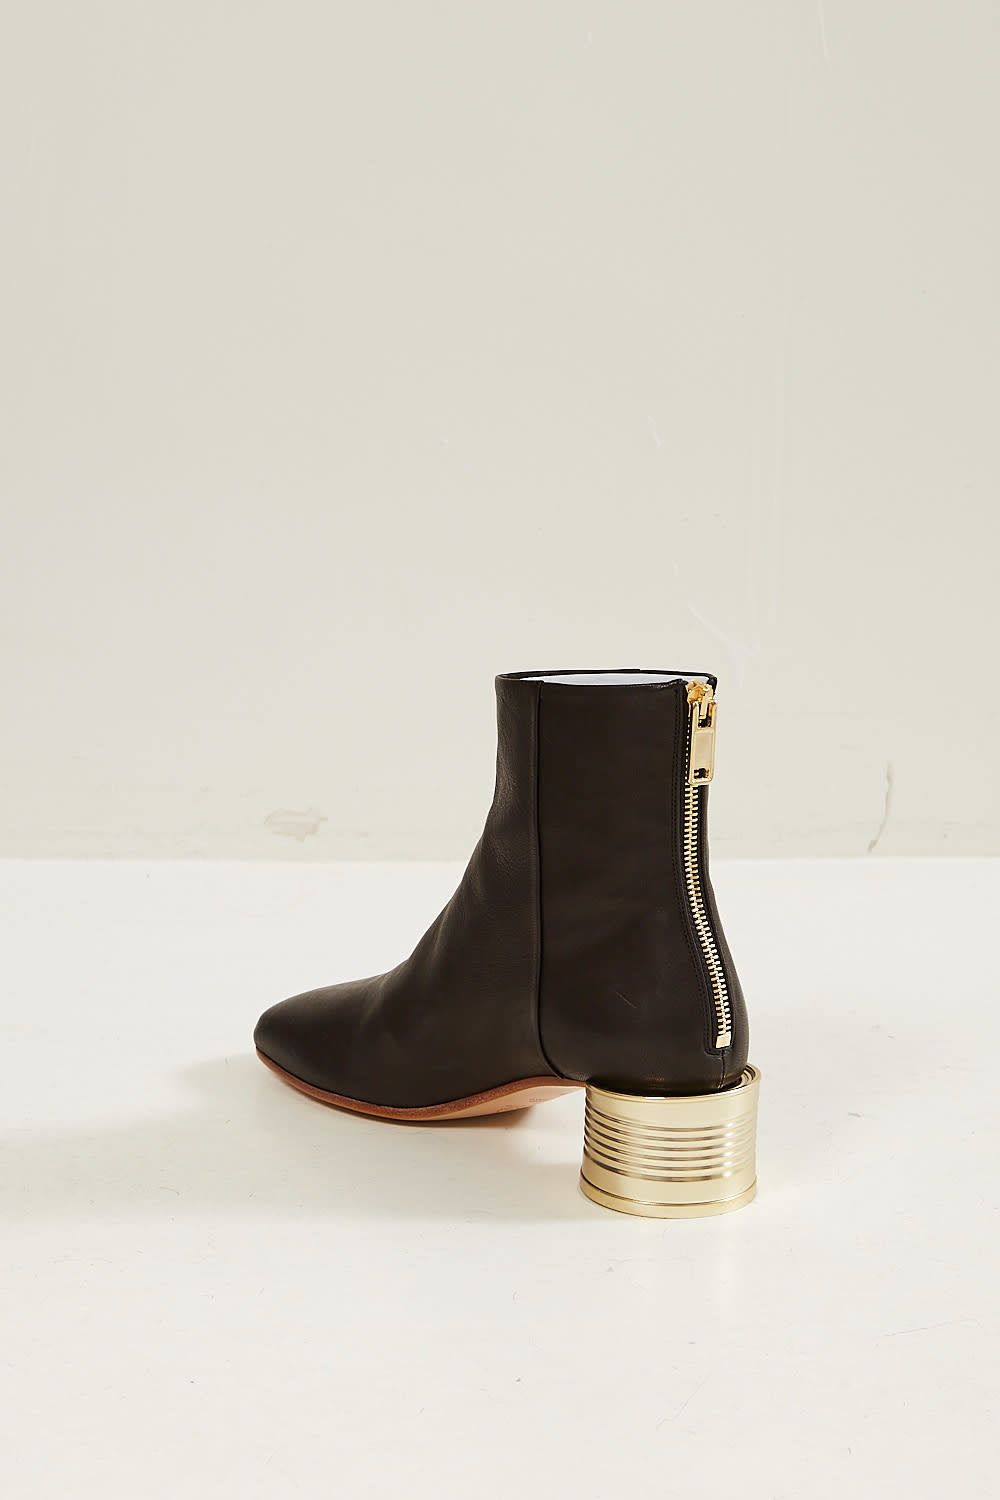 Maison Margiela - Tin can heel ankle boots